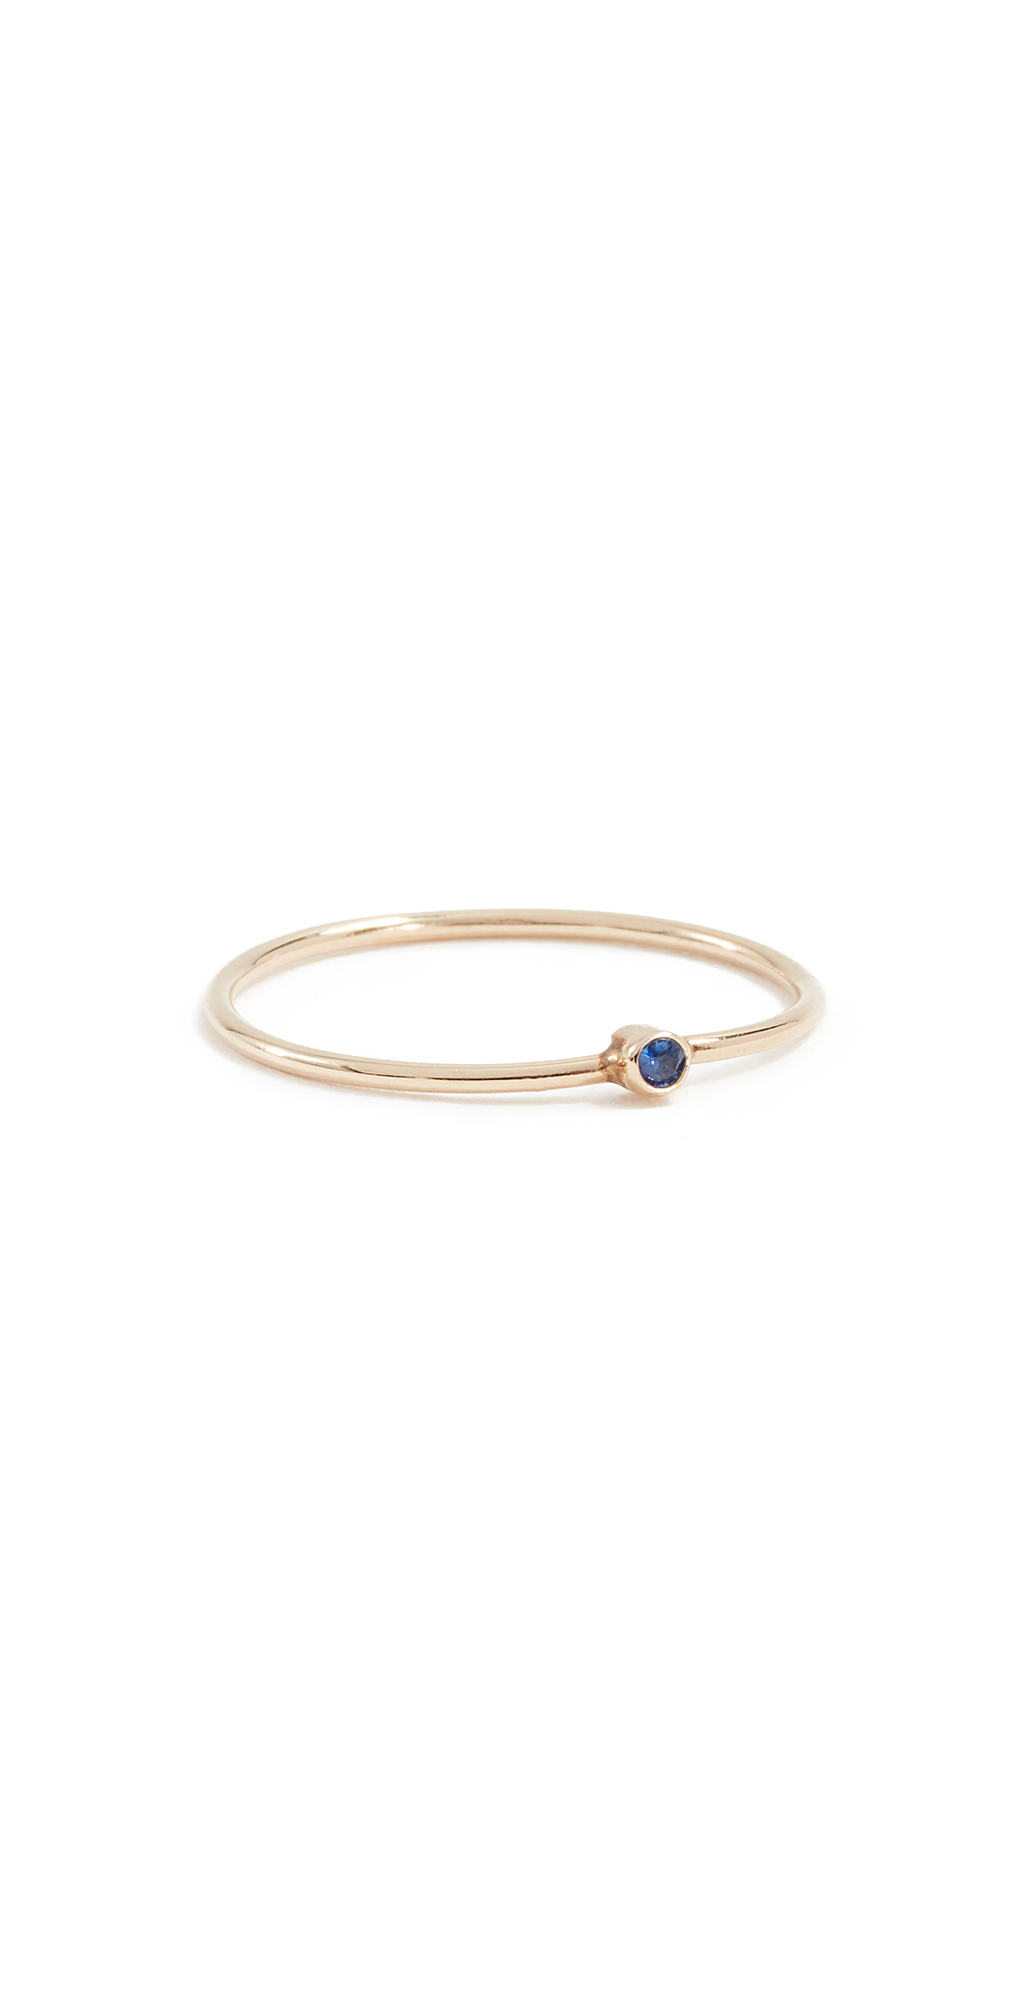 18k Gold Thin Ring with Sapphire